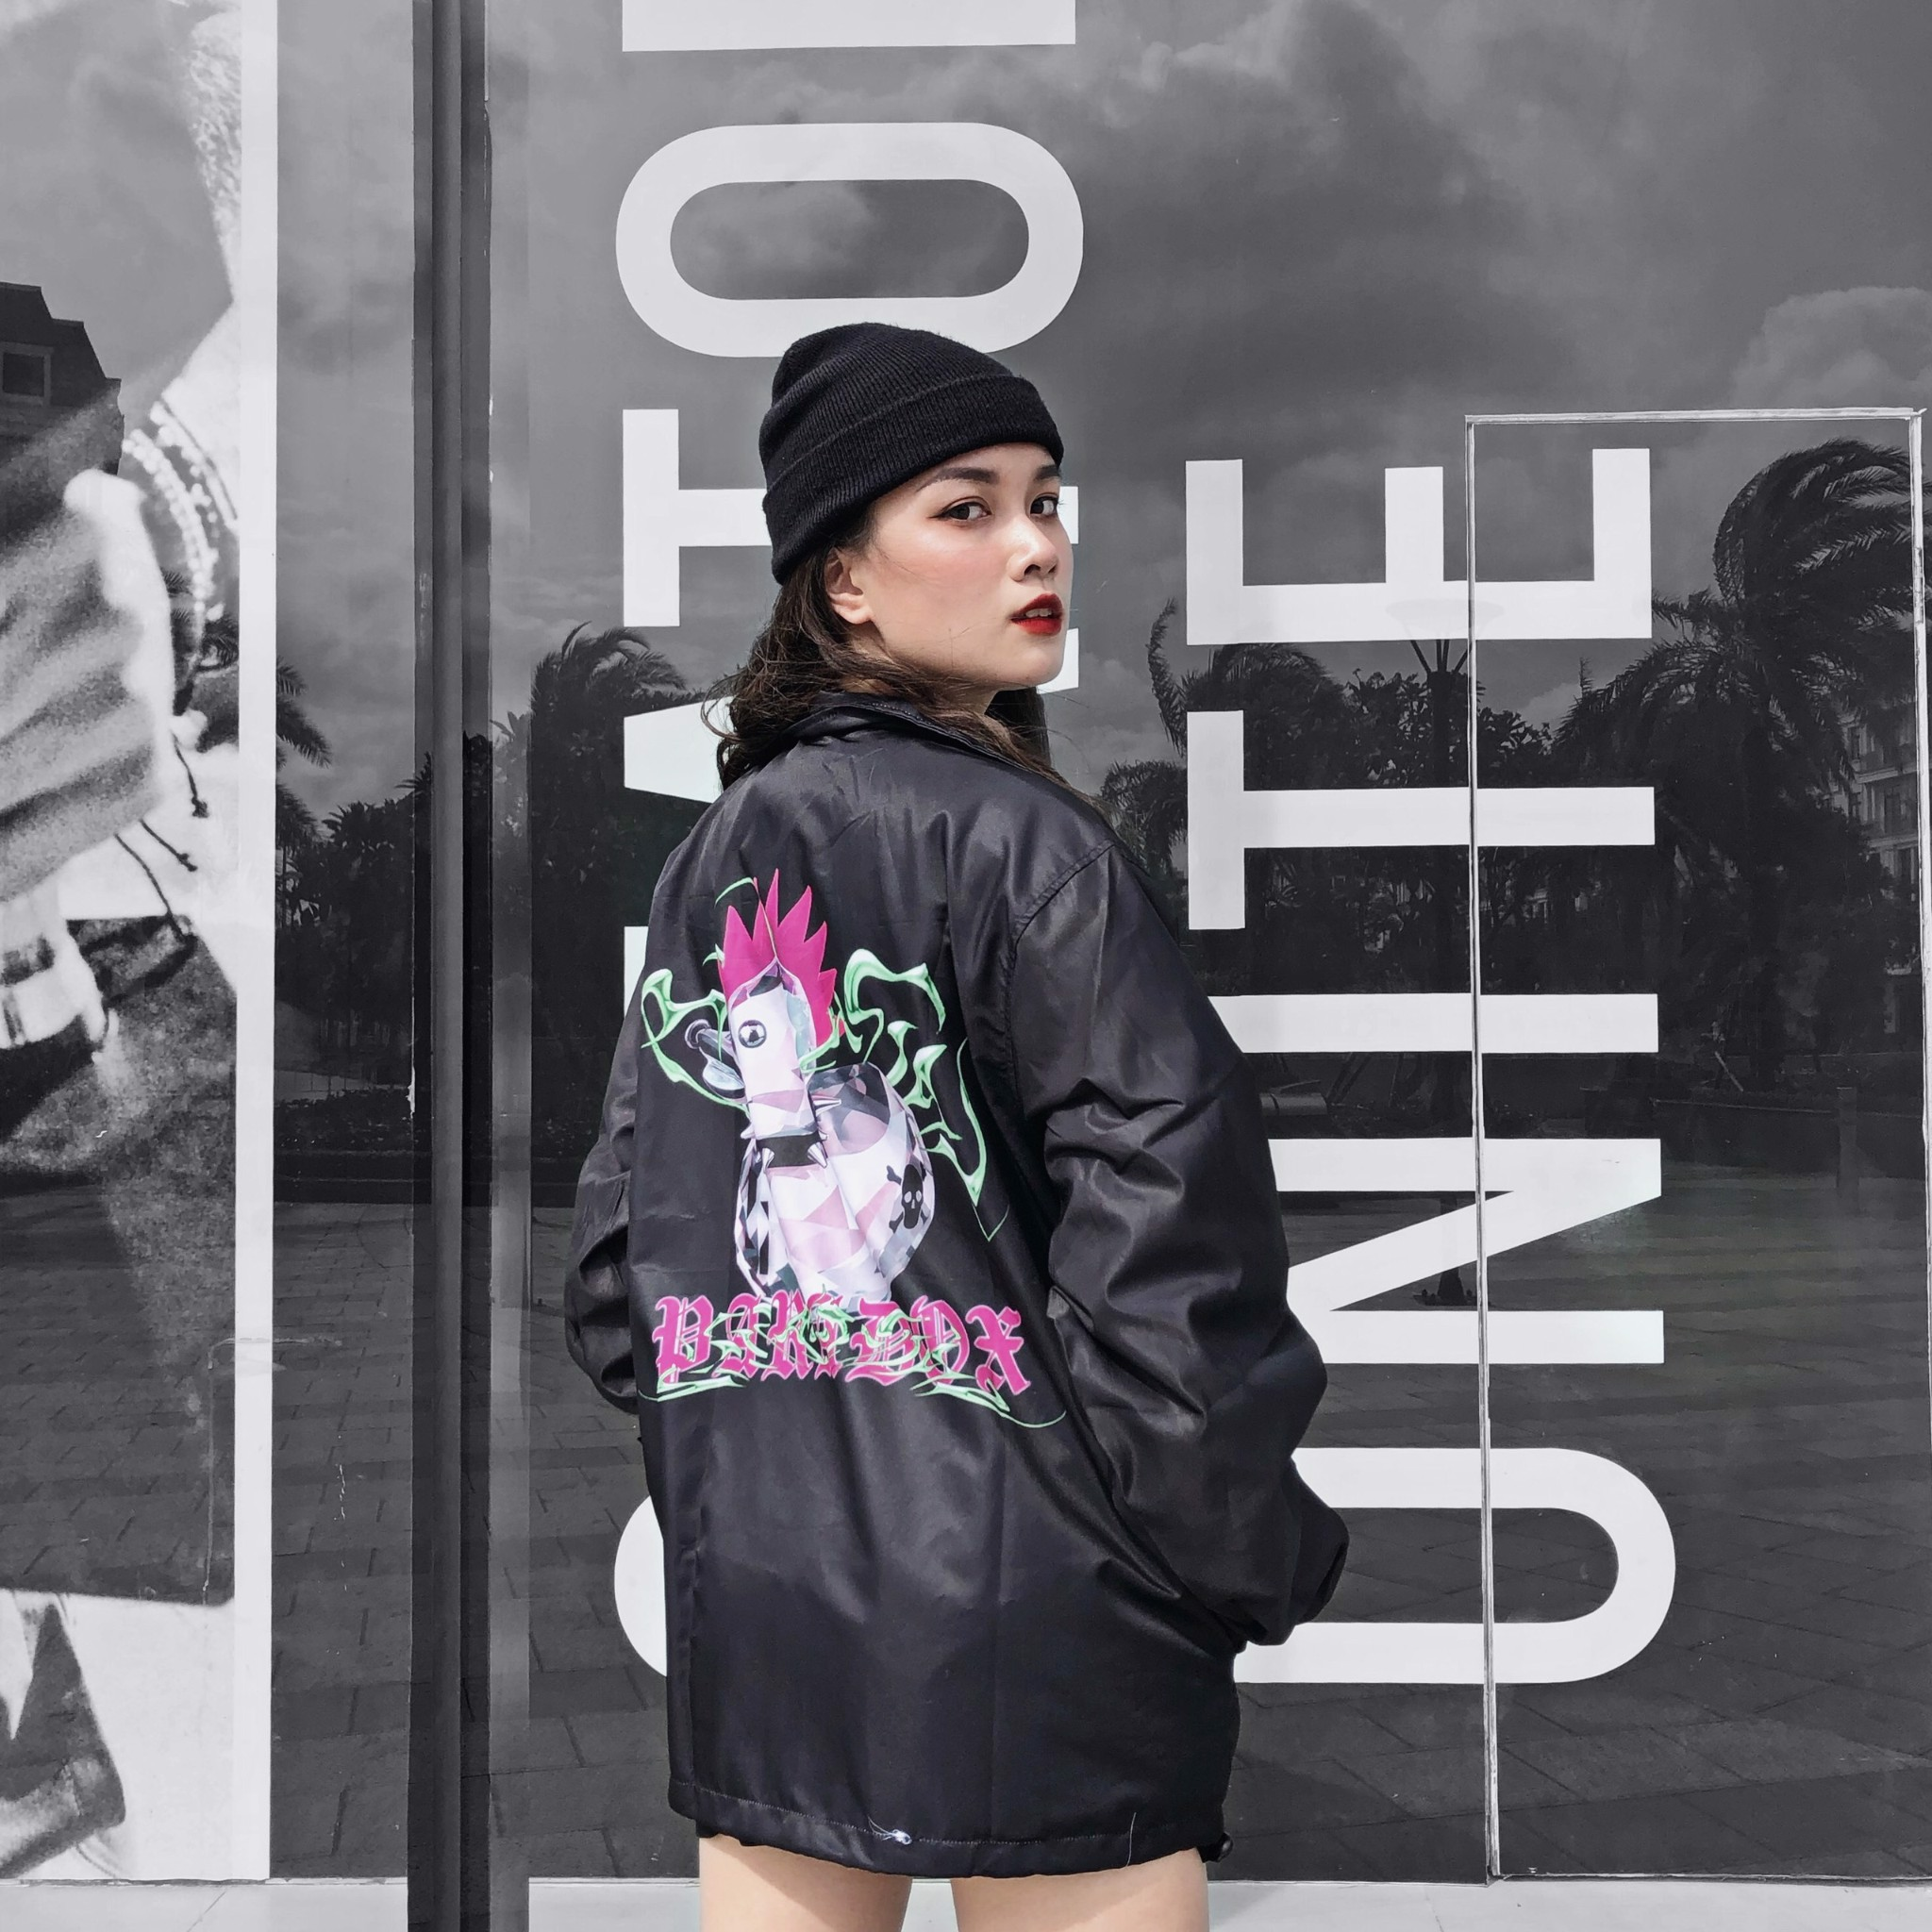 ROCHICK OVER-PRINTED JACKET (Black)